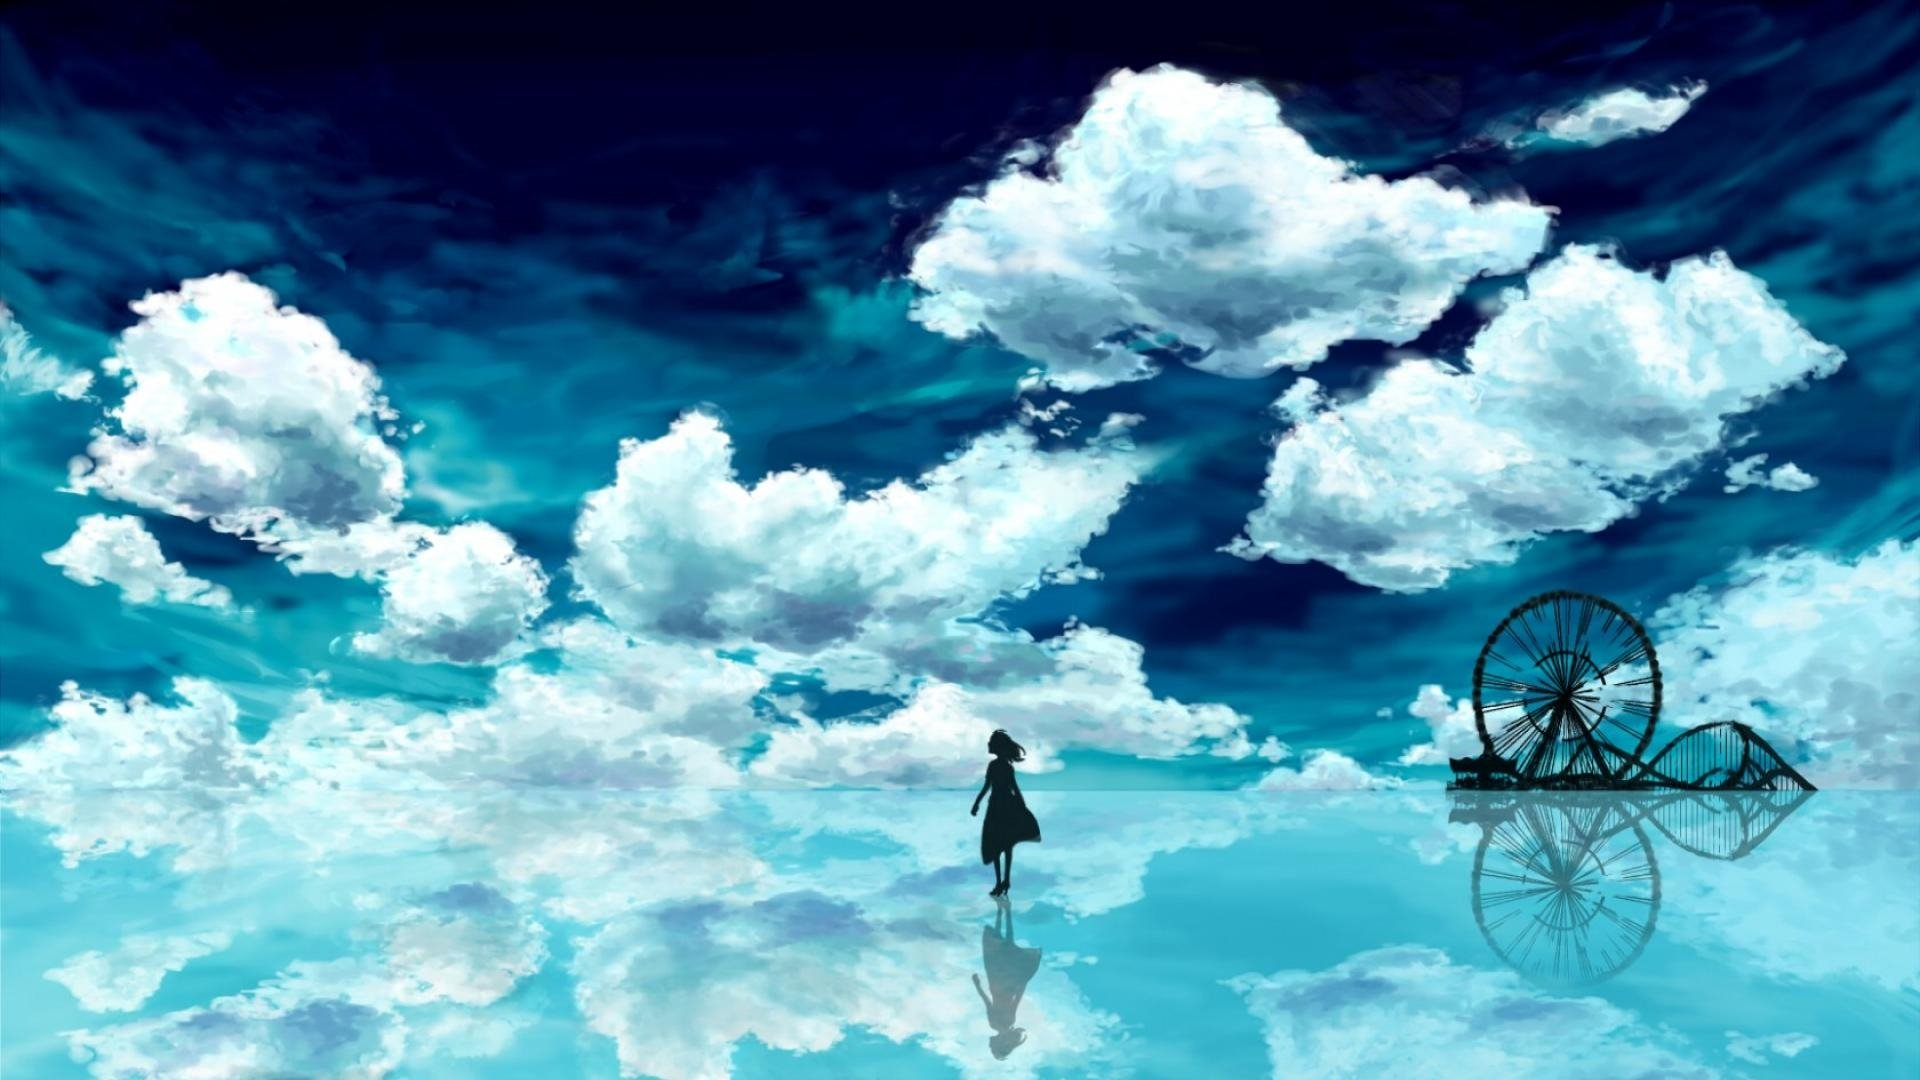 anime blue sky full hd wallpaper and background